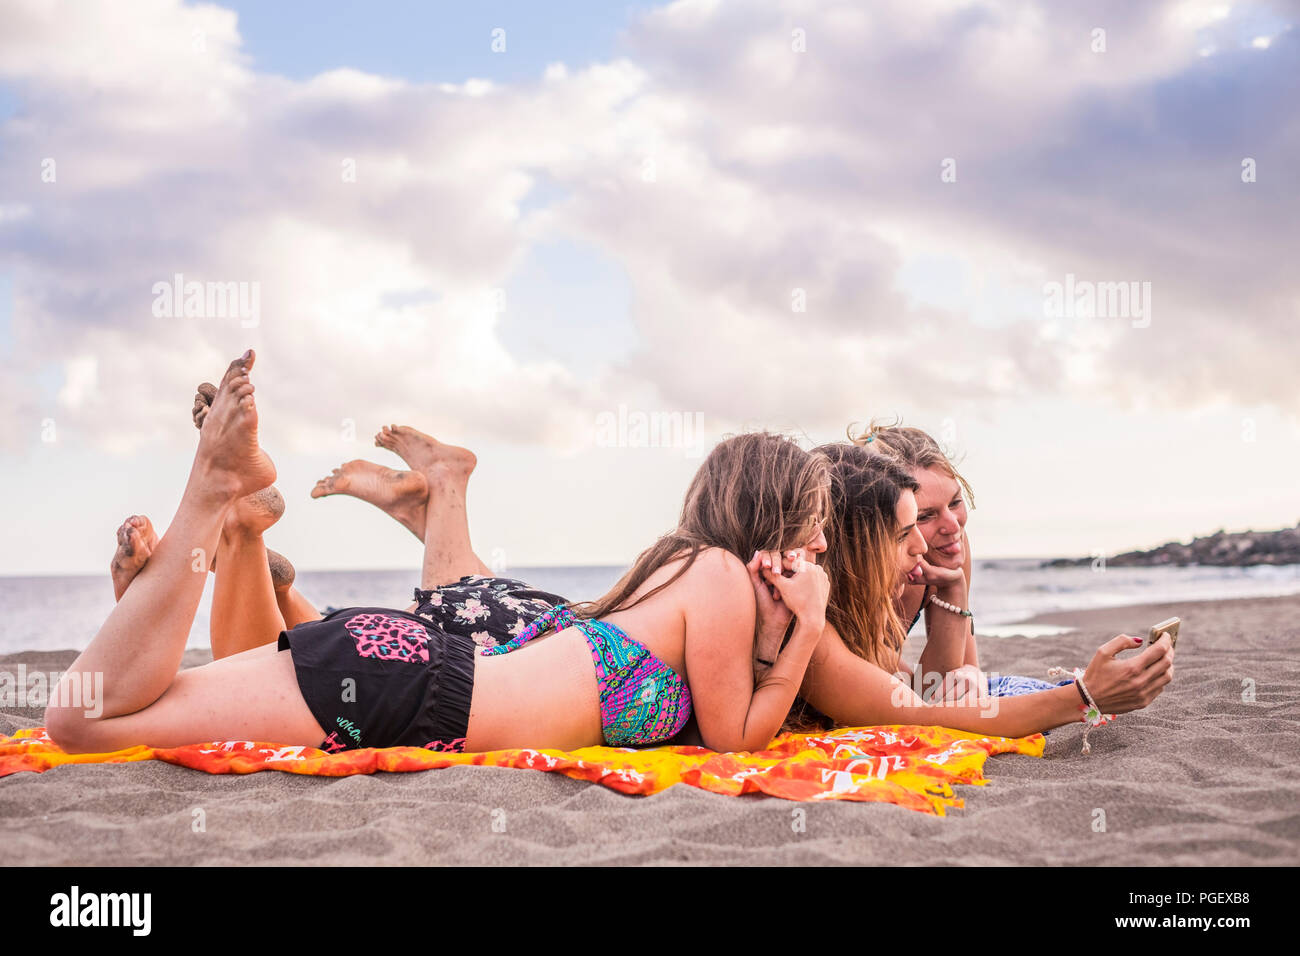 summer, holidays, vacation, technology and happiness concept - group of smiling people with sunglasses taking picture with smartphone on beach. happin - Stock Image